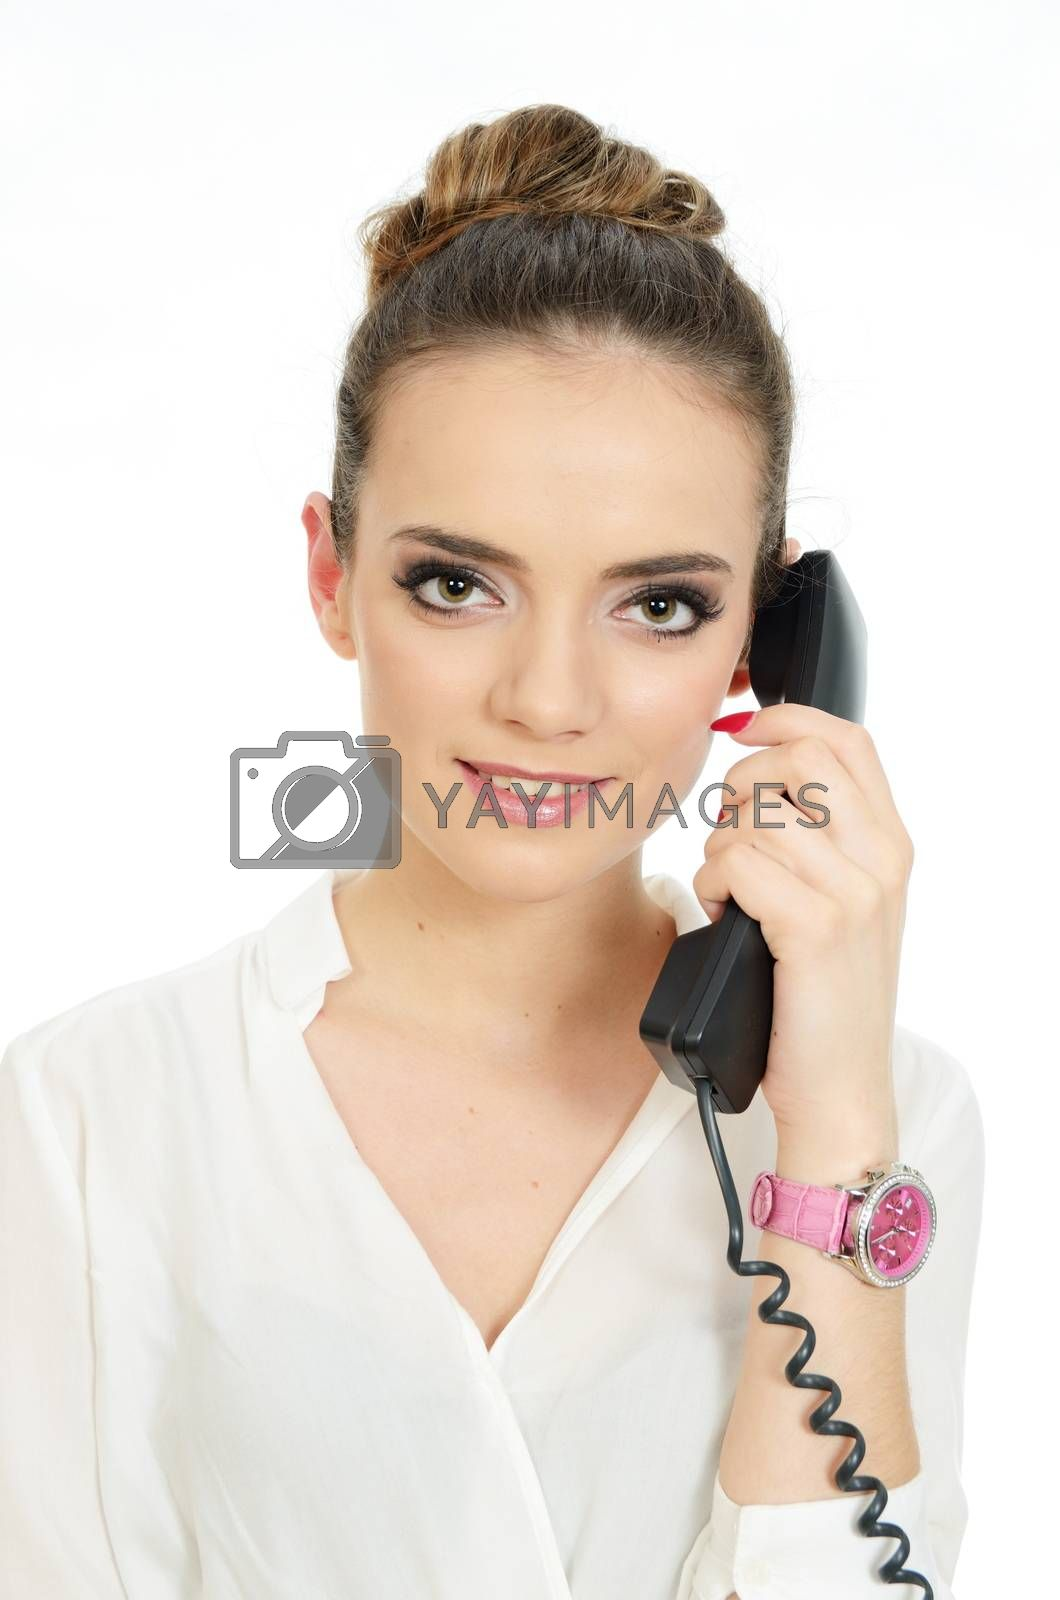 Young girl holding phone in her hand. Neat office lady wearing elegant white blouse.